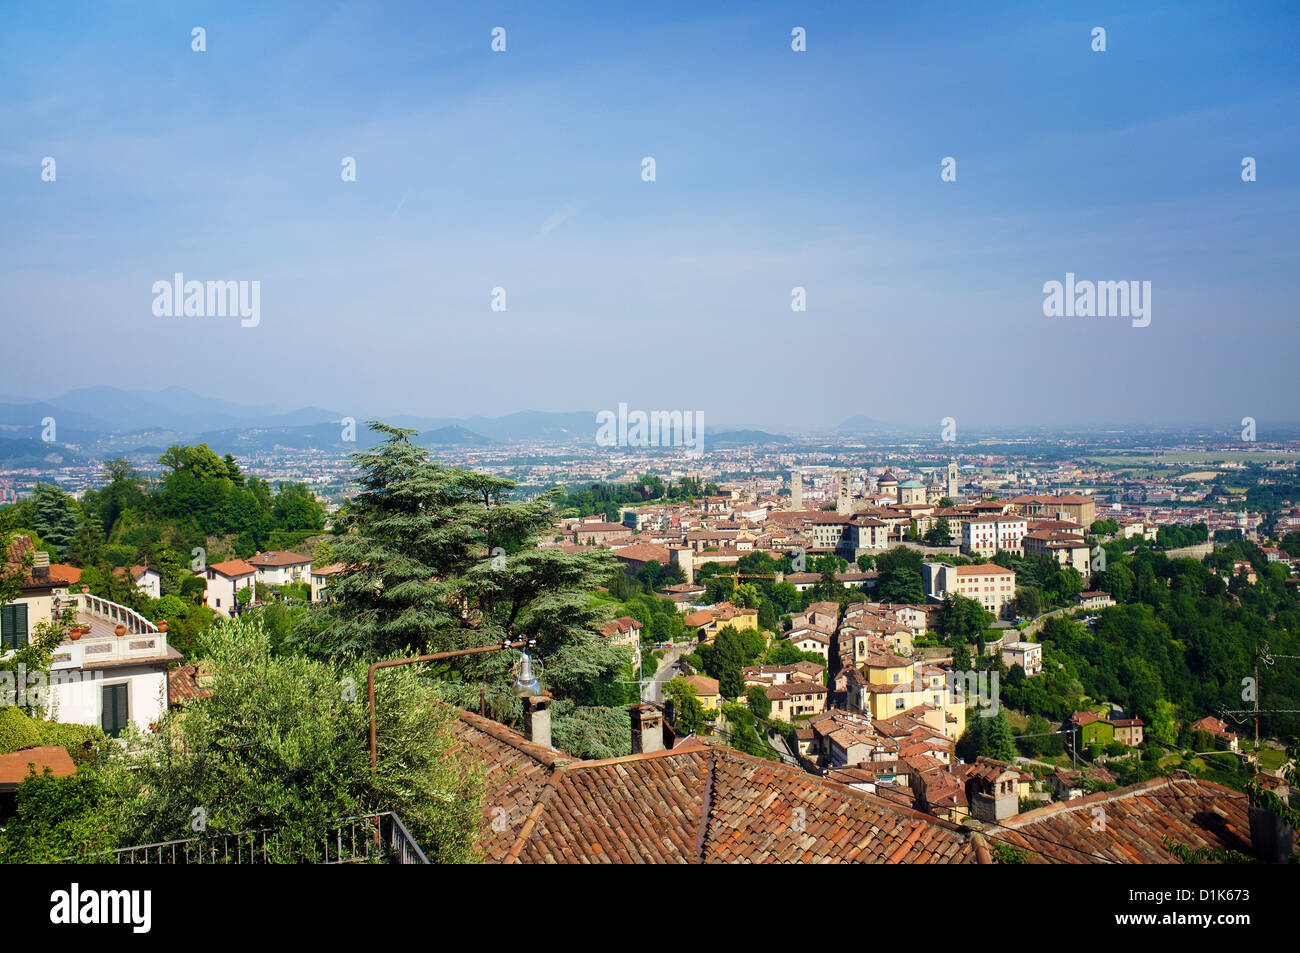 A View over Bergamo as seen from the hills of Citta Alta (upper town). Lomberdy, Italy. Stock Photo